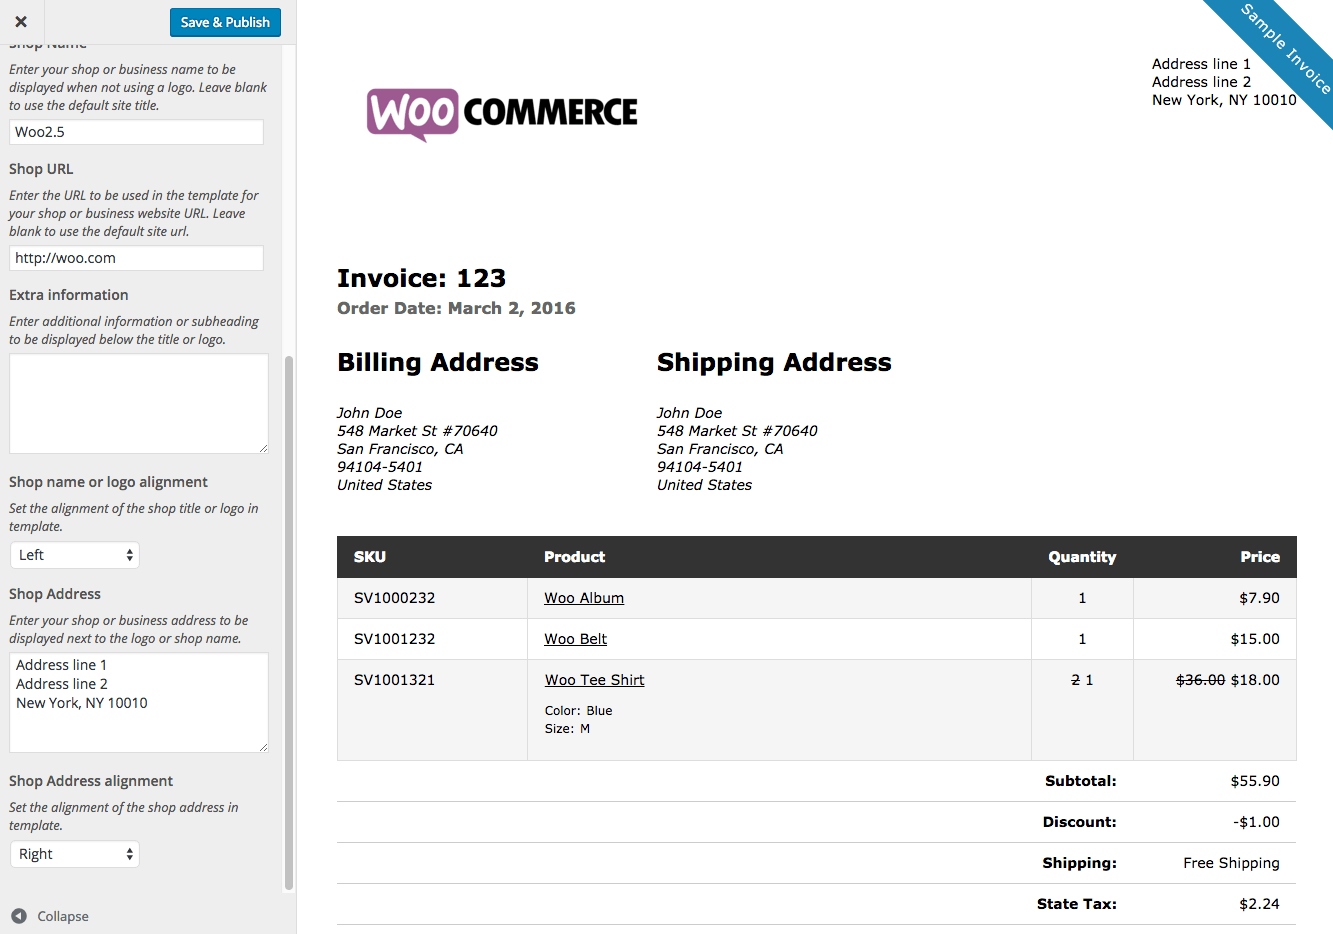 Indianaparanormalus  Mesmerizing Print Invoices Amp Packing Lists  Woocommerce With Remarkable Woocommerce Print Invoices  Packing Lists Customizer With Enchanting Donation Receipt Sample Also Neat Receipt App In Addition Statement Of Receipt And Department Of Homeland Security Receipt Number As Well As Plumbing Receipt Template Additionally Sears Return Policy With Receipt From Woocommercecom With Indianaparanormalus  Remarkable Print Invoices Amp Packing Lists  Woocommerce With Enchanting Woocommerce Print Invoices  Packing Lists Customizer And Mesmerizing Donation Receipt Sample Also Neat Receipt App In Addition Statement Of Receipt From Woocommercecom